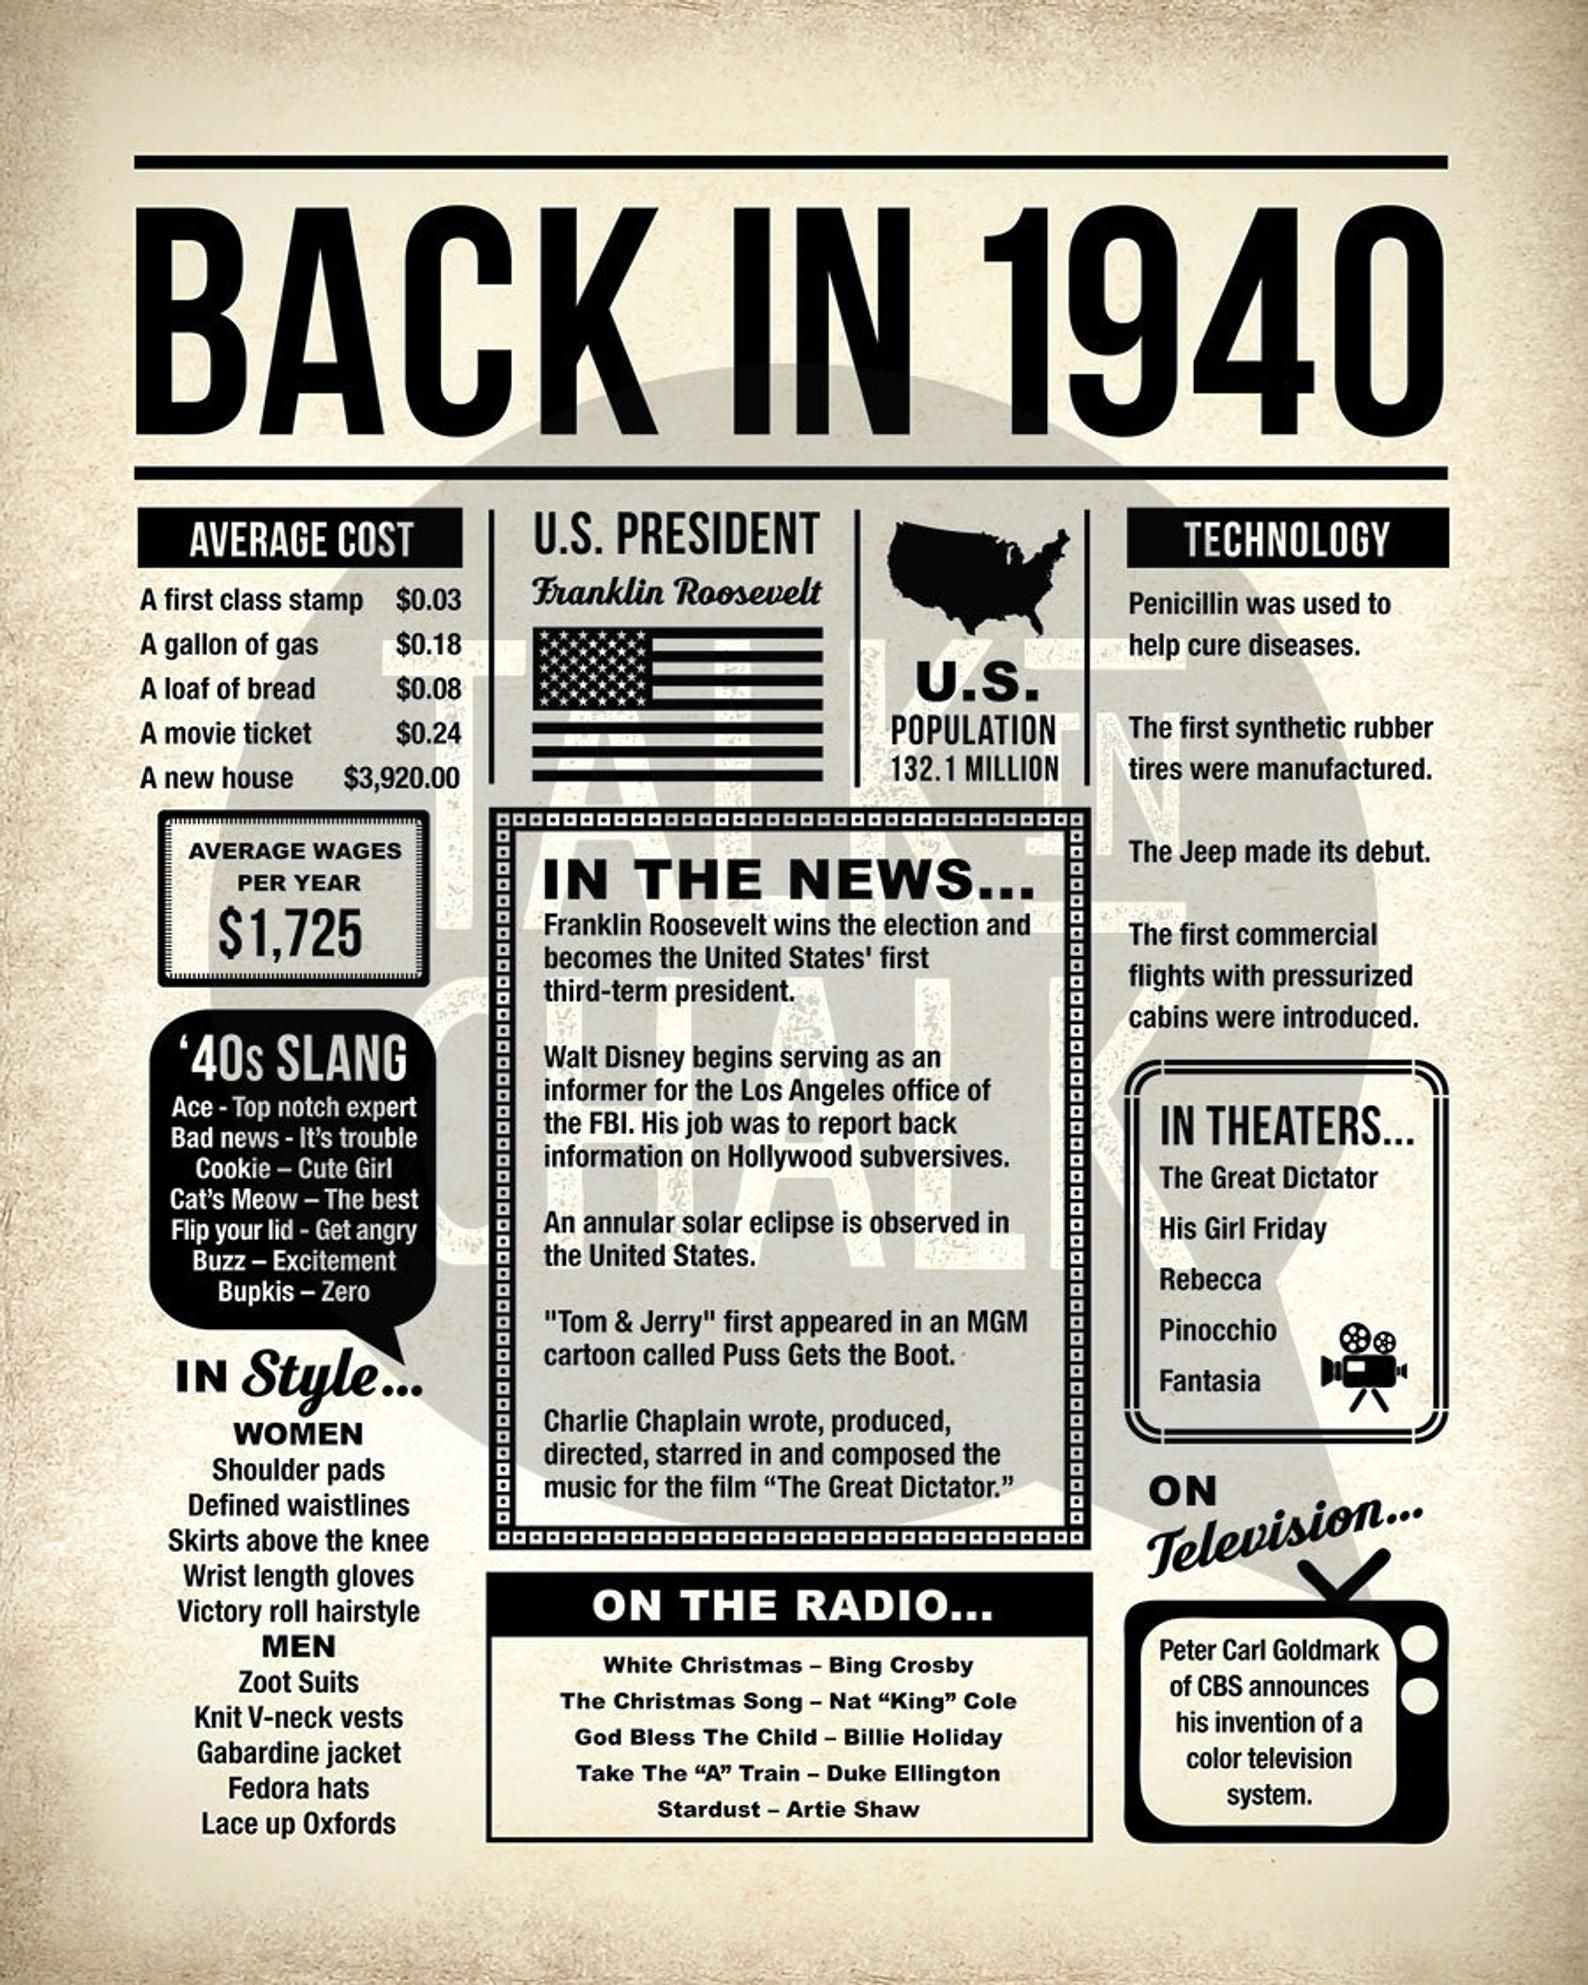 80th Wedding Anniversary Gift: Back In 1940 Newspaper Poster PRINTABLE